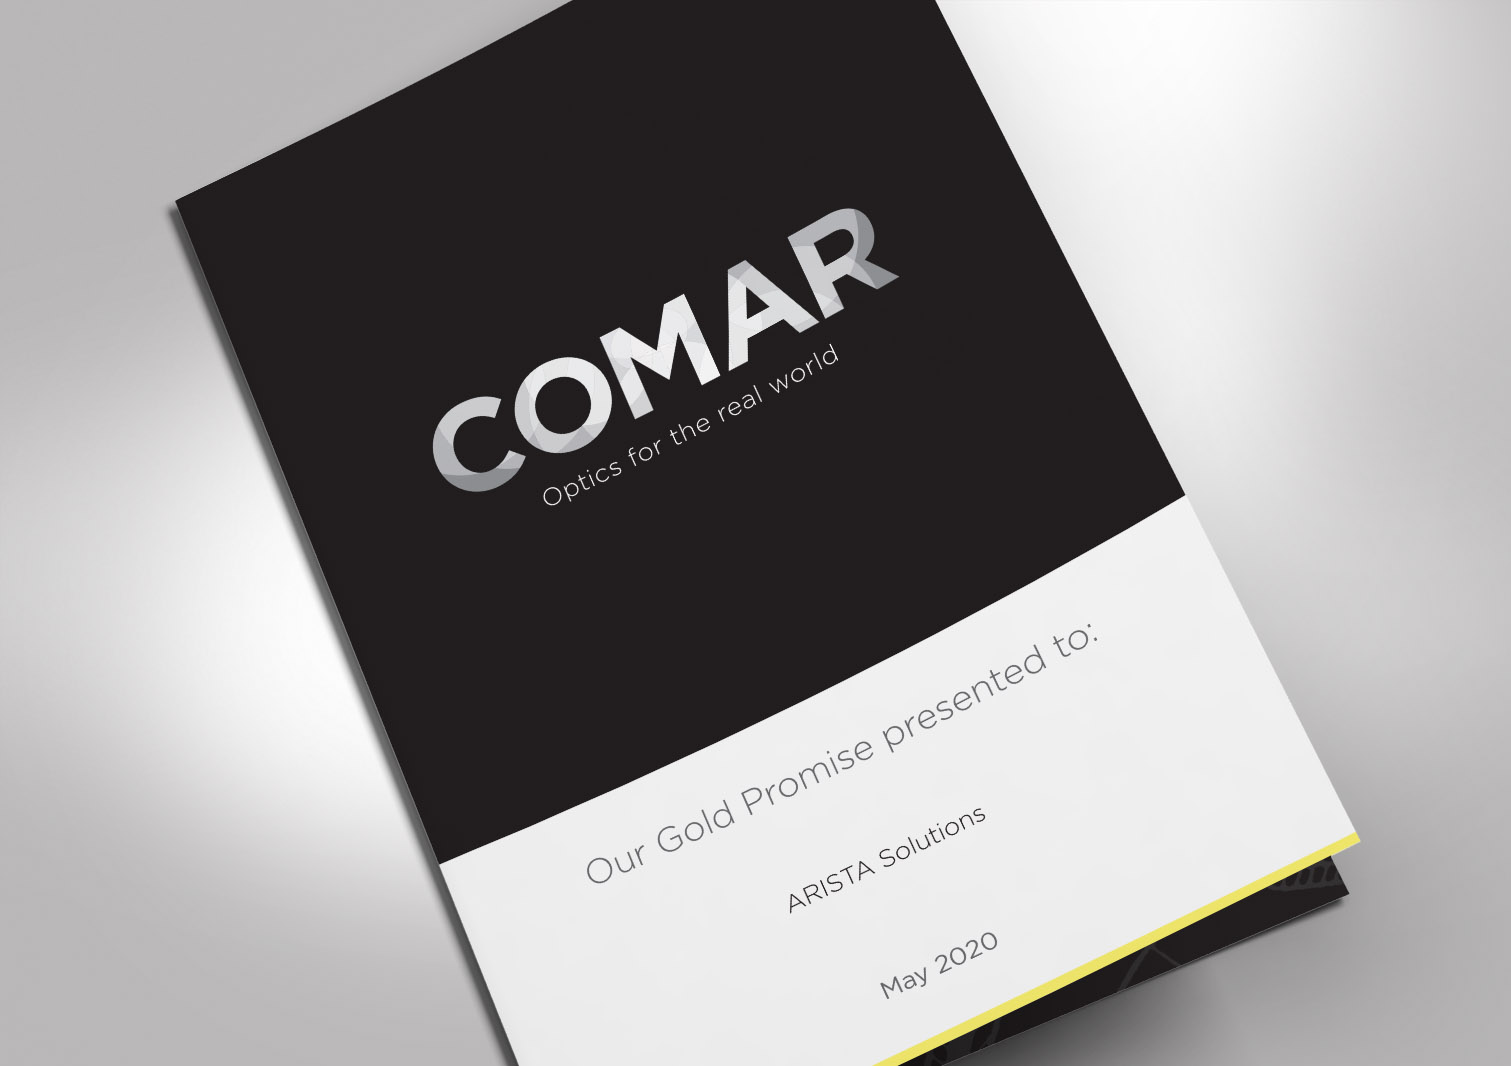 Comar Optics Limited - Gold Promise - Proposal Cover